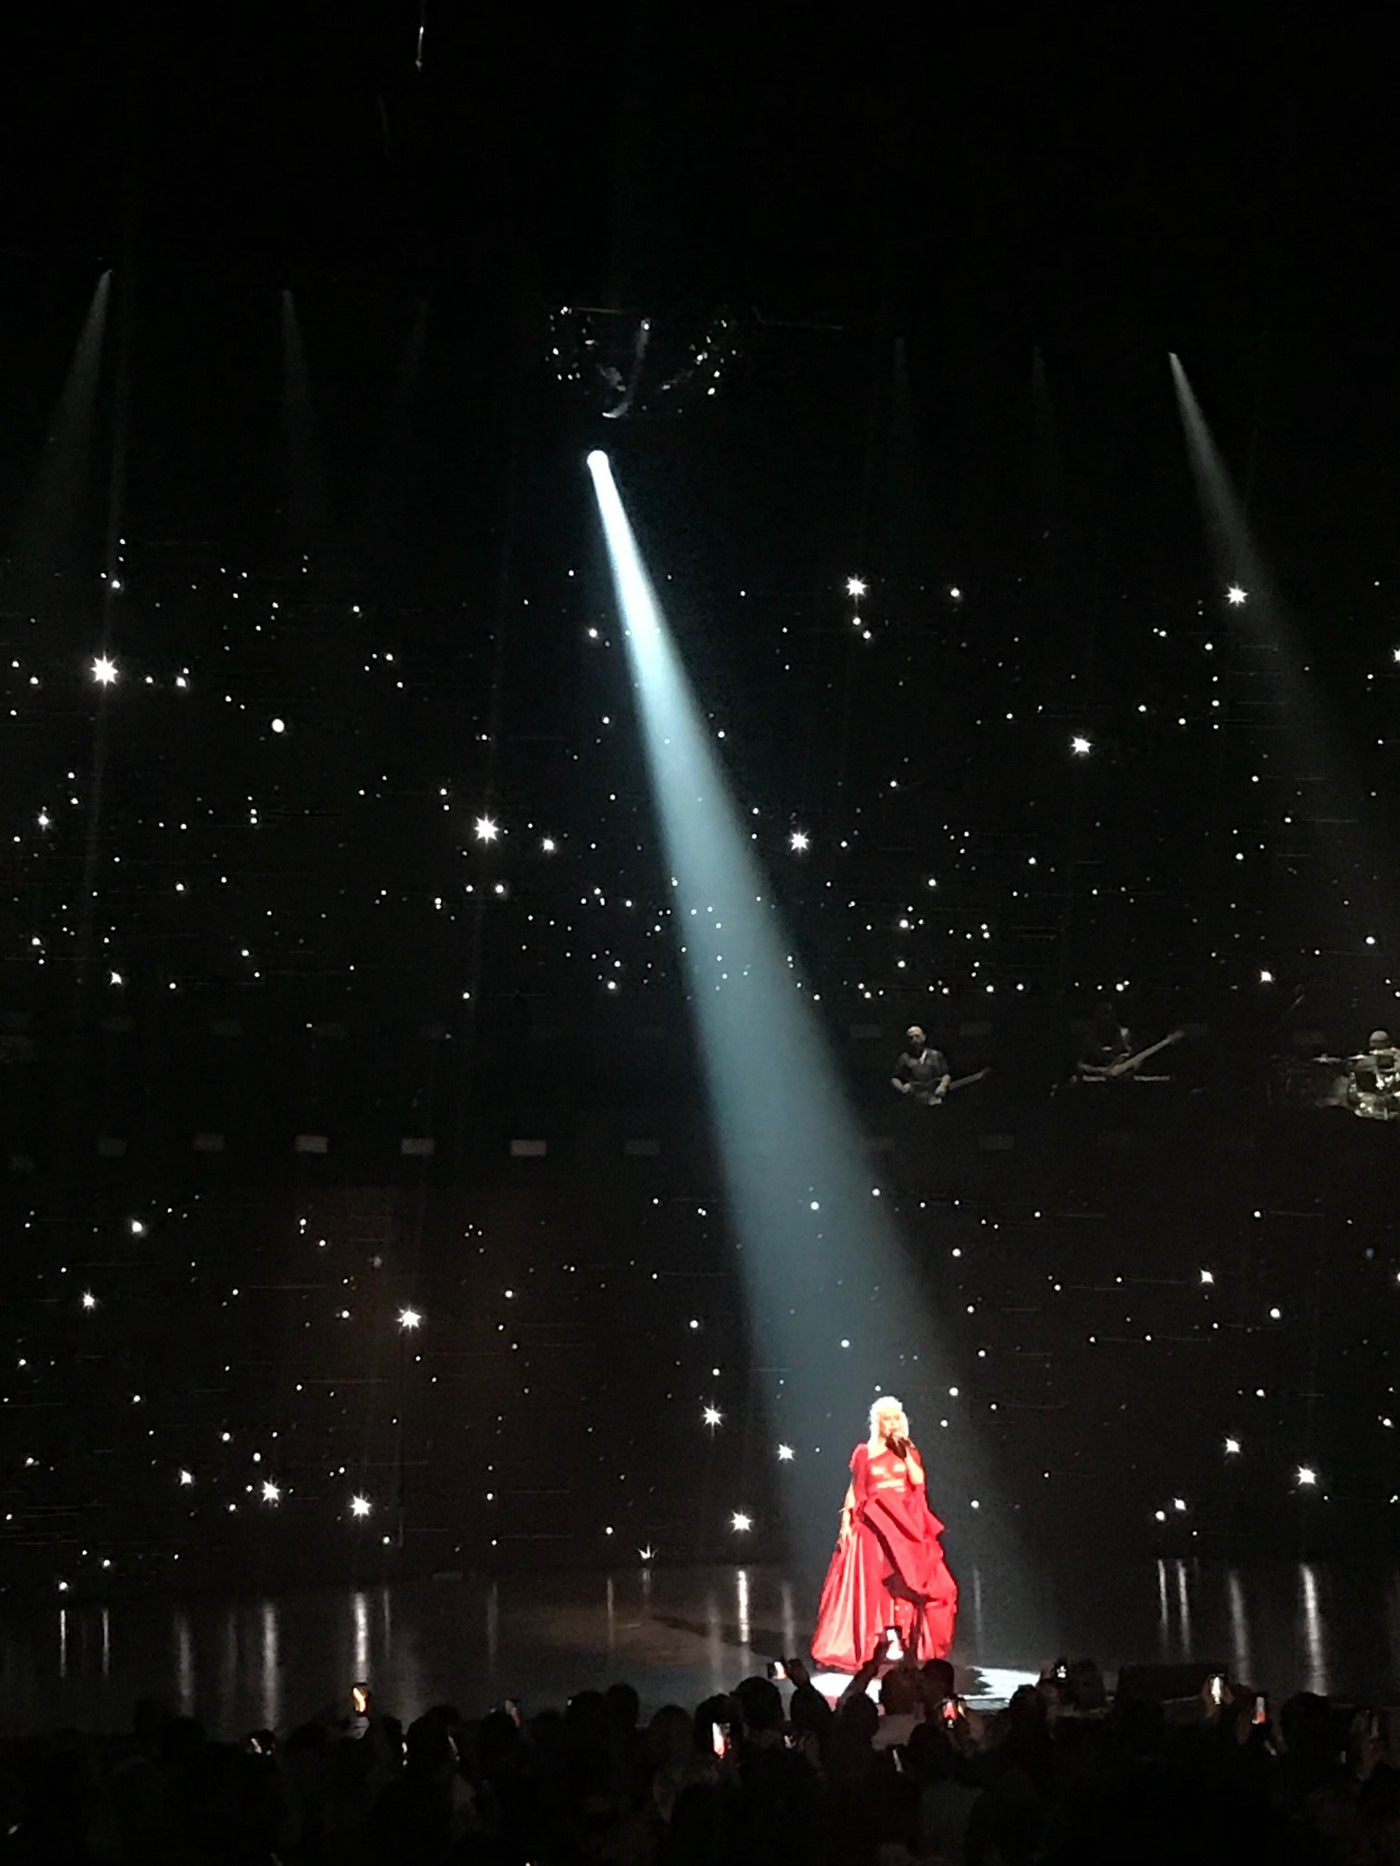 spotlight on a figure dressed in red